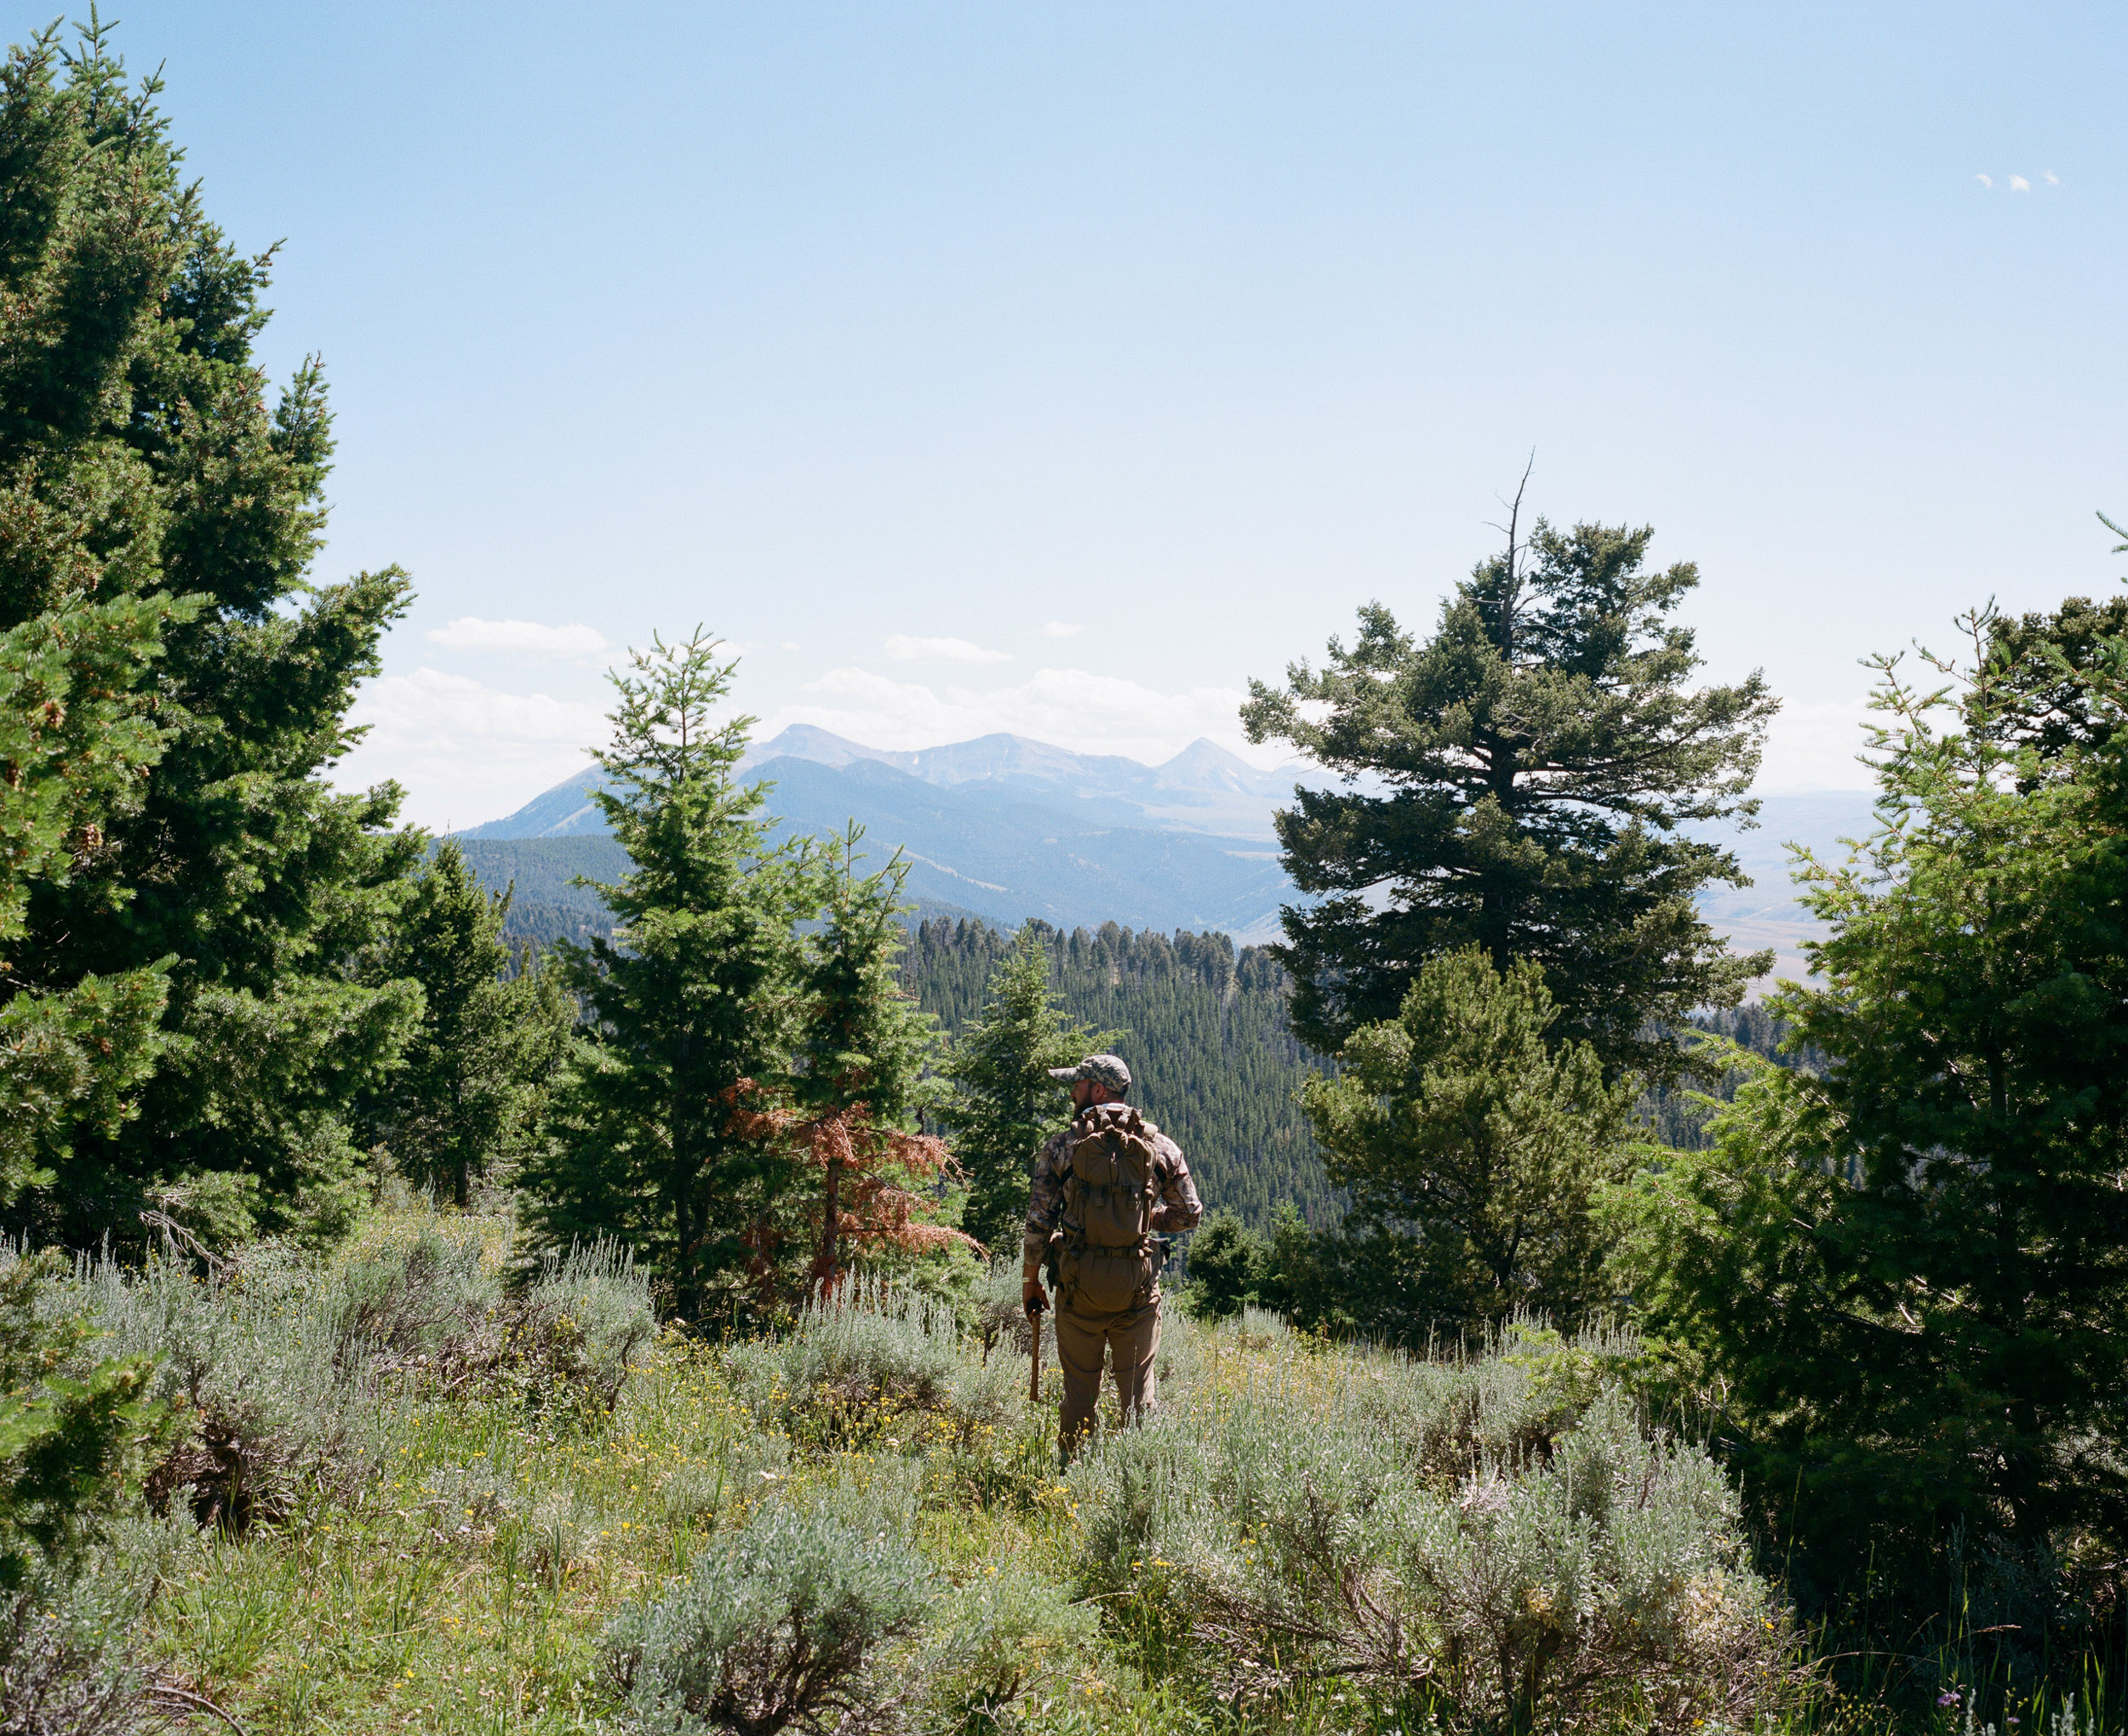 Hunter in camouflage standing between trees in the mountains of Montana